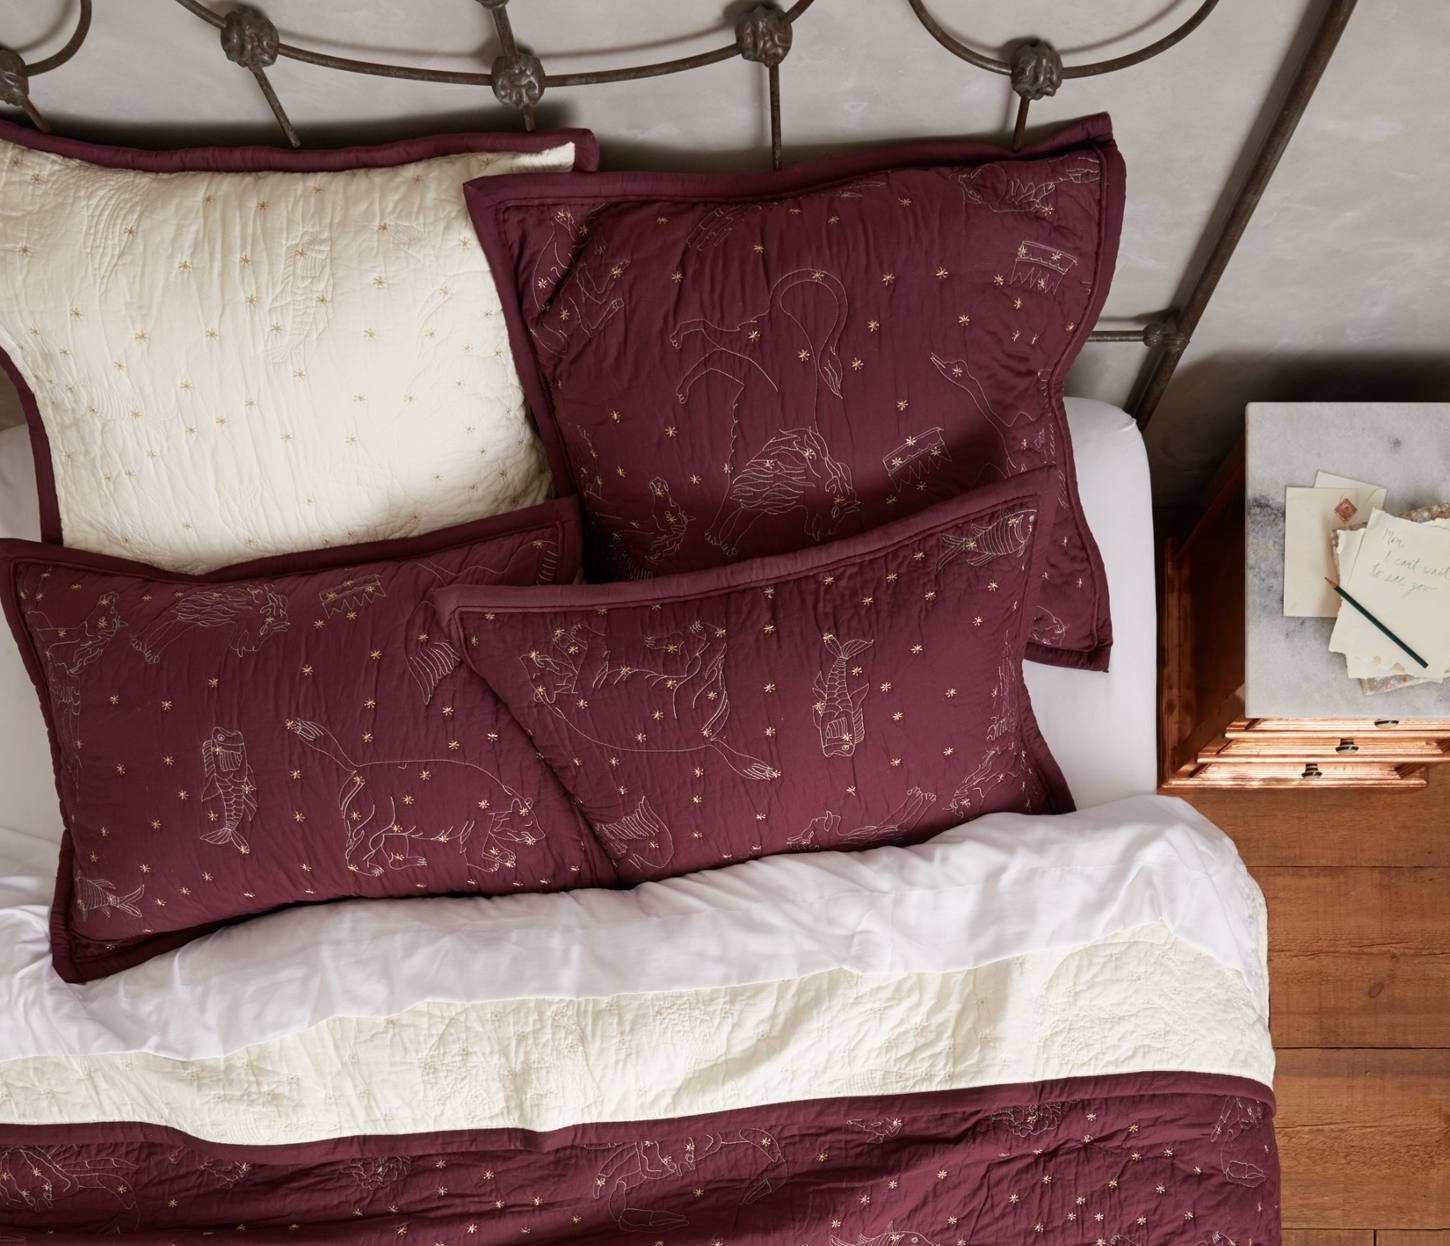 Anthropologie Cosmos Coverlet in Burgundy